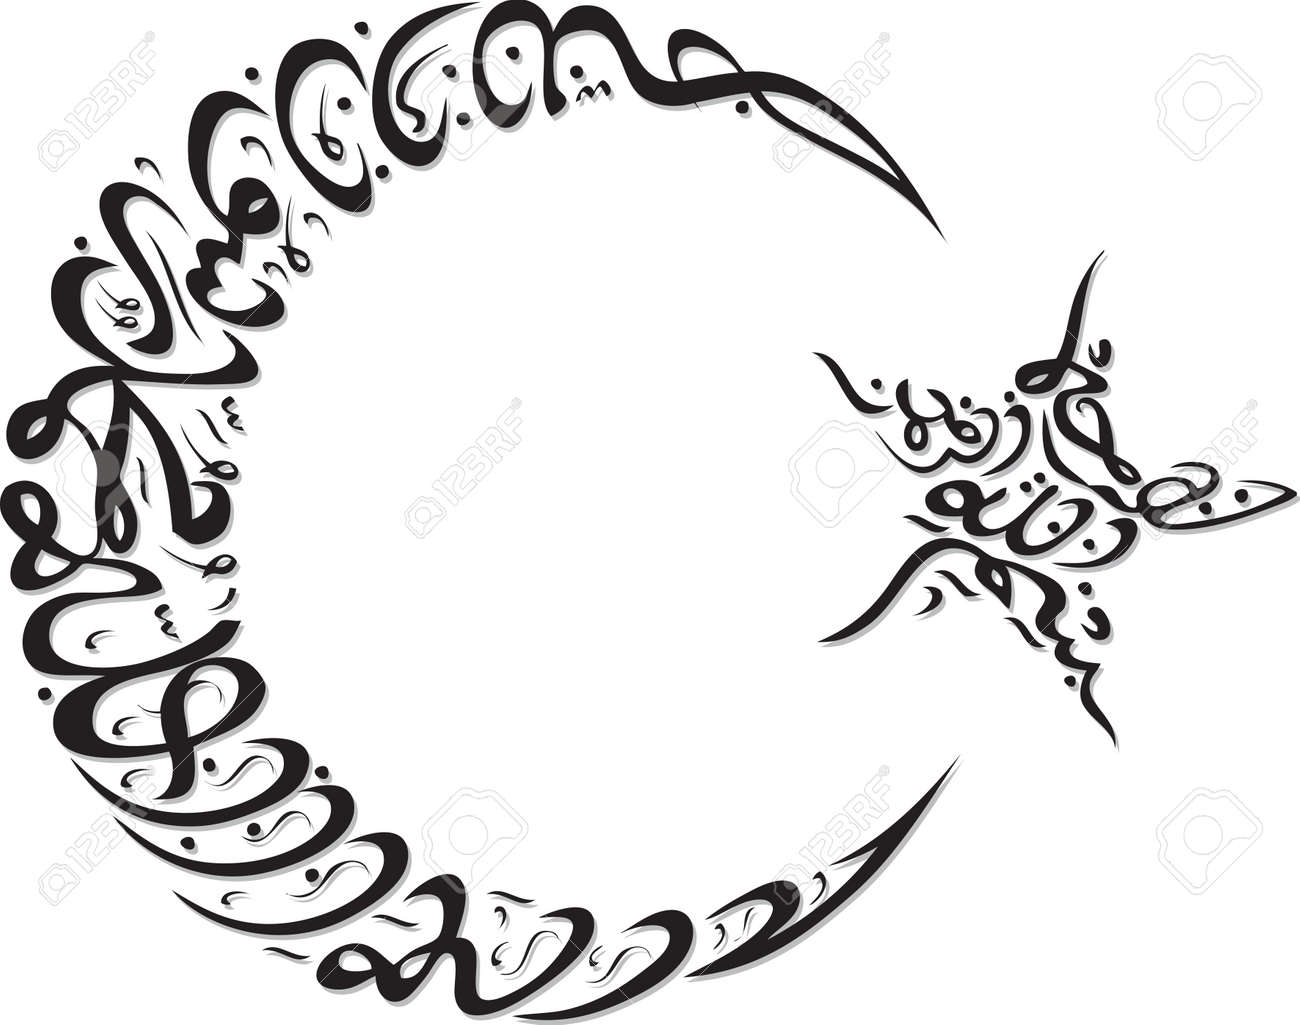 islamic calligraphy in crescent and star shape black on white rh 123rf com black and white christmas vector art black and white vector art of tiki bar